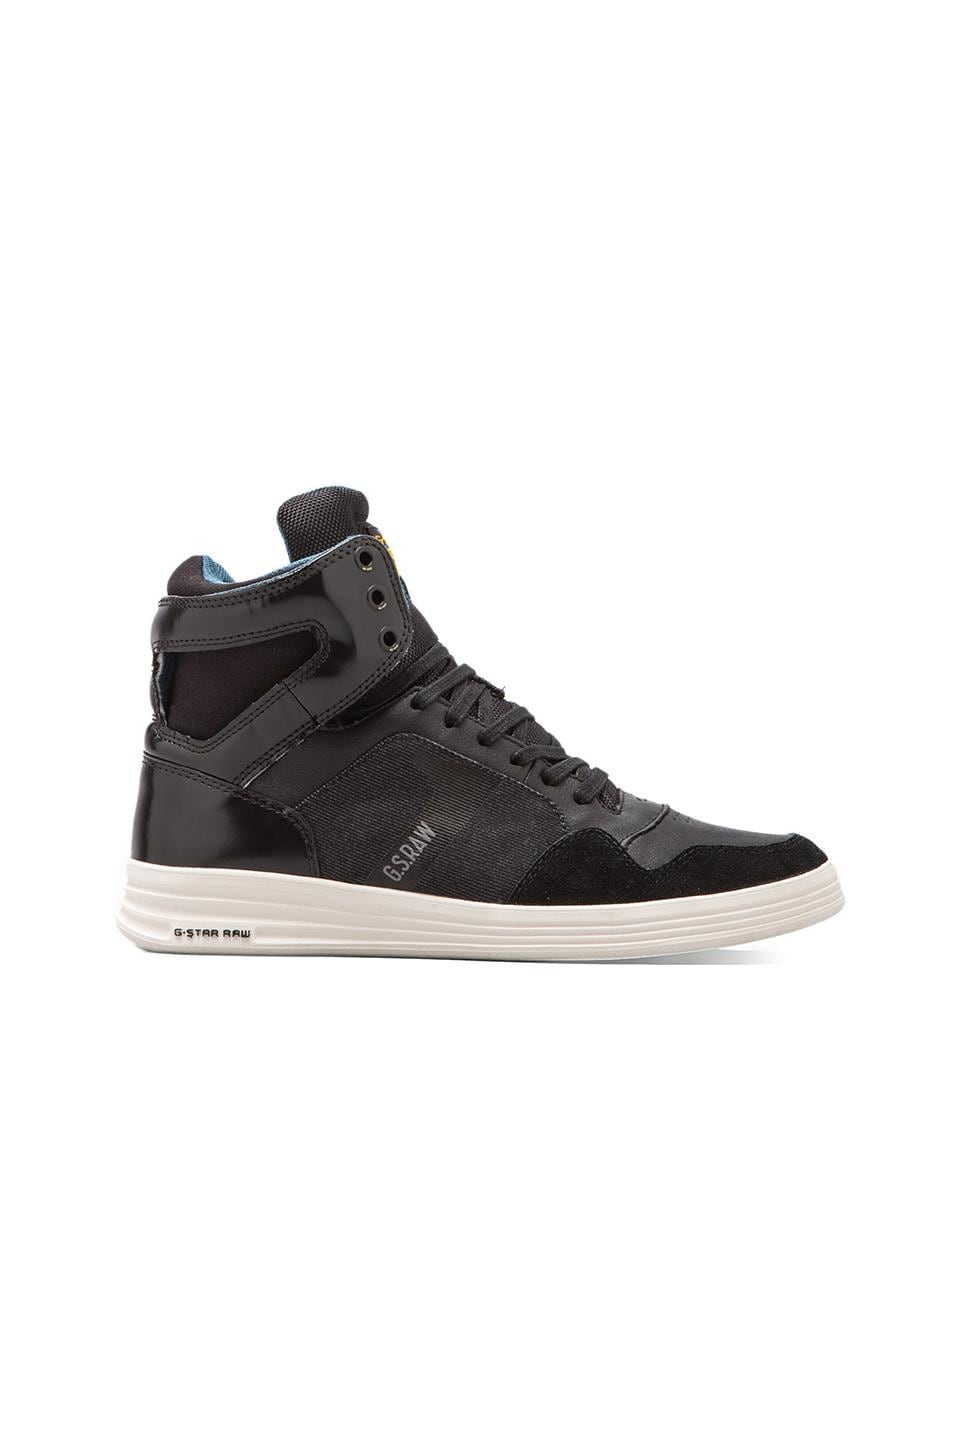 G-Star Futura Outland en Black Leather w/ Denim